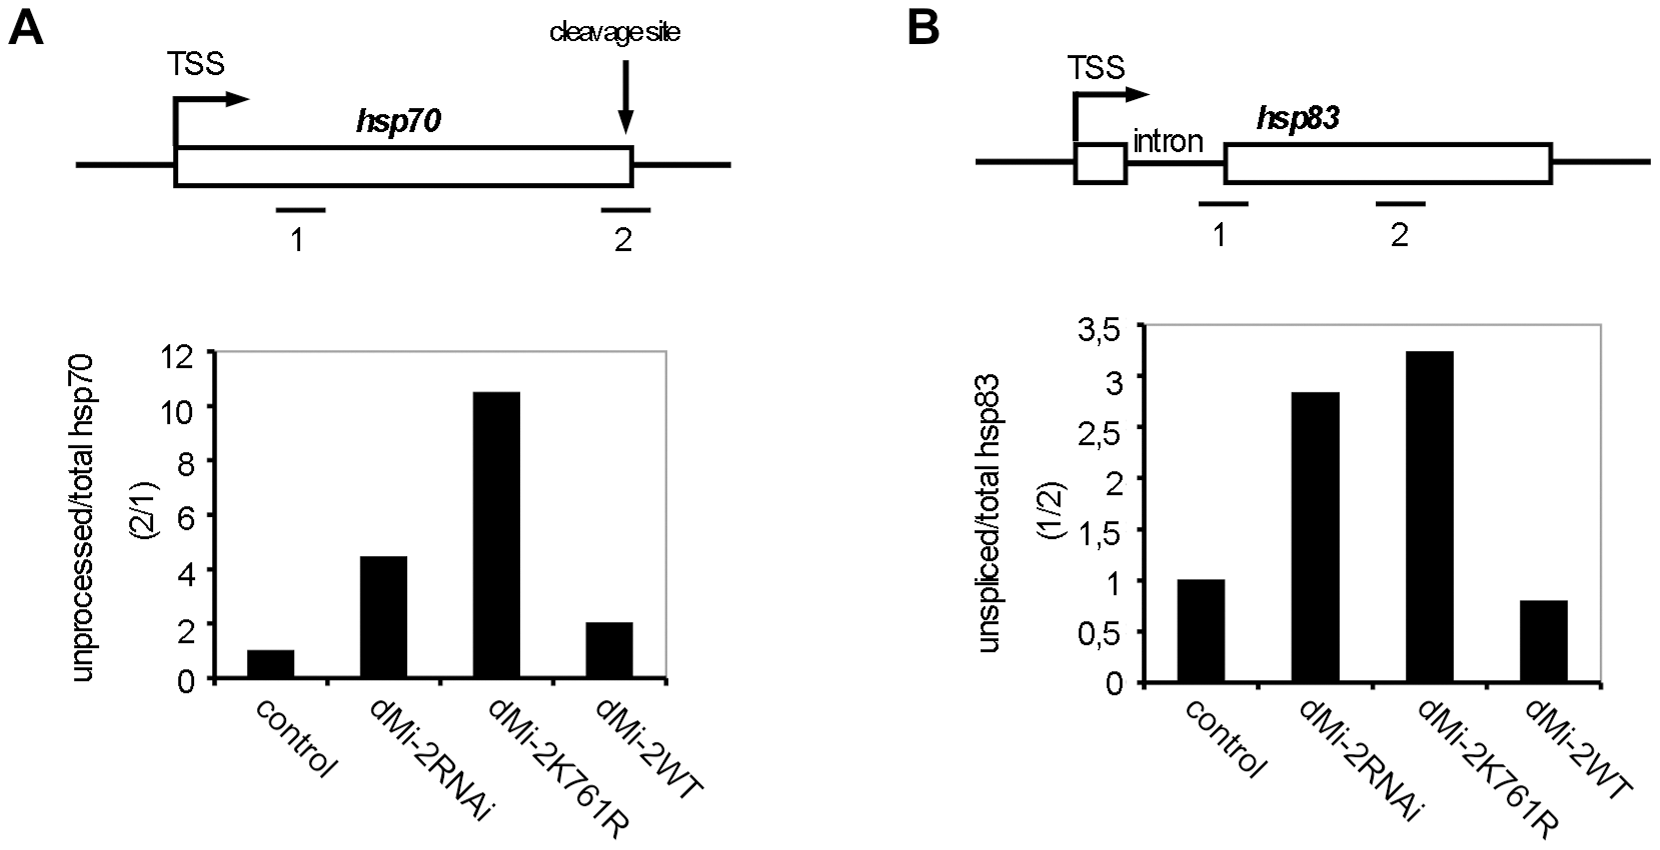 dMi-2 is required for efficient RNA processing.